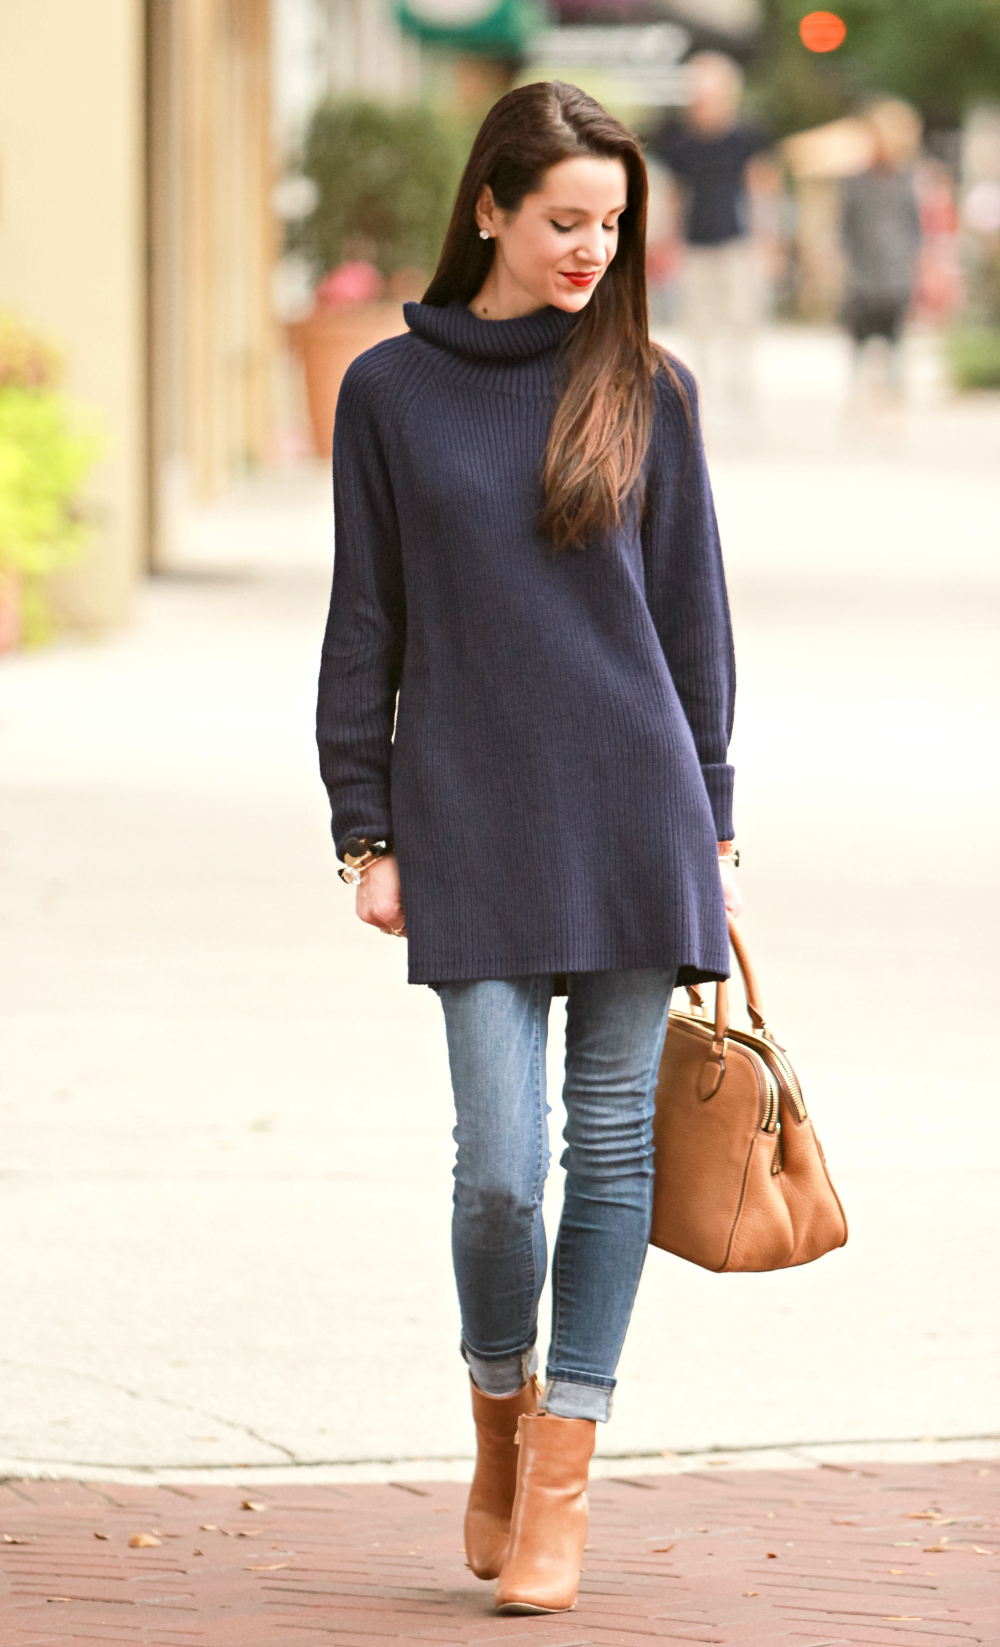 Coldwater Creek, Oversized Sweater, Navy Turtleneck, Stephanie Ziajka, Diary of a Debutante